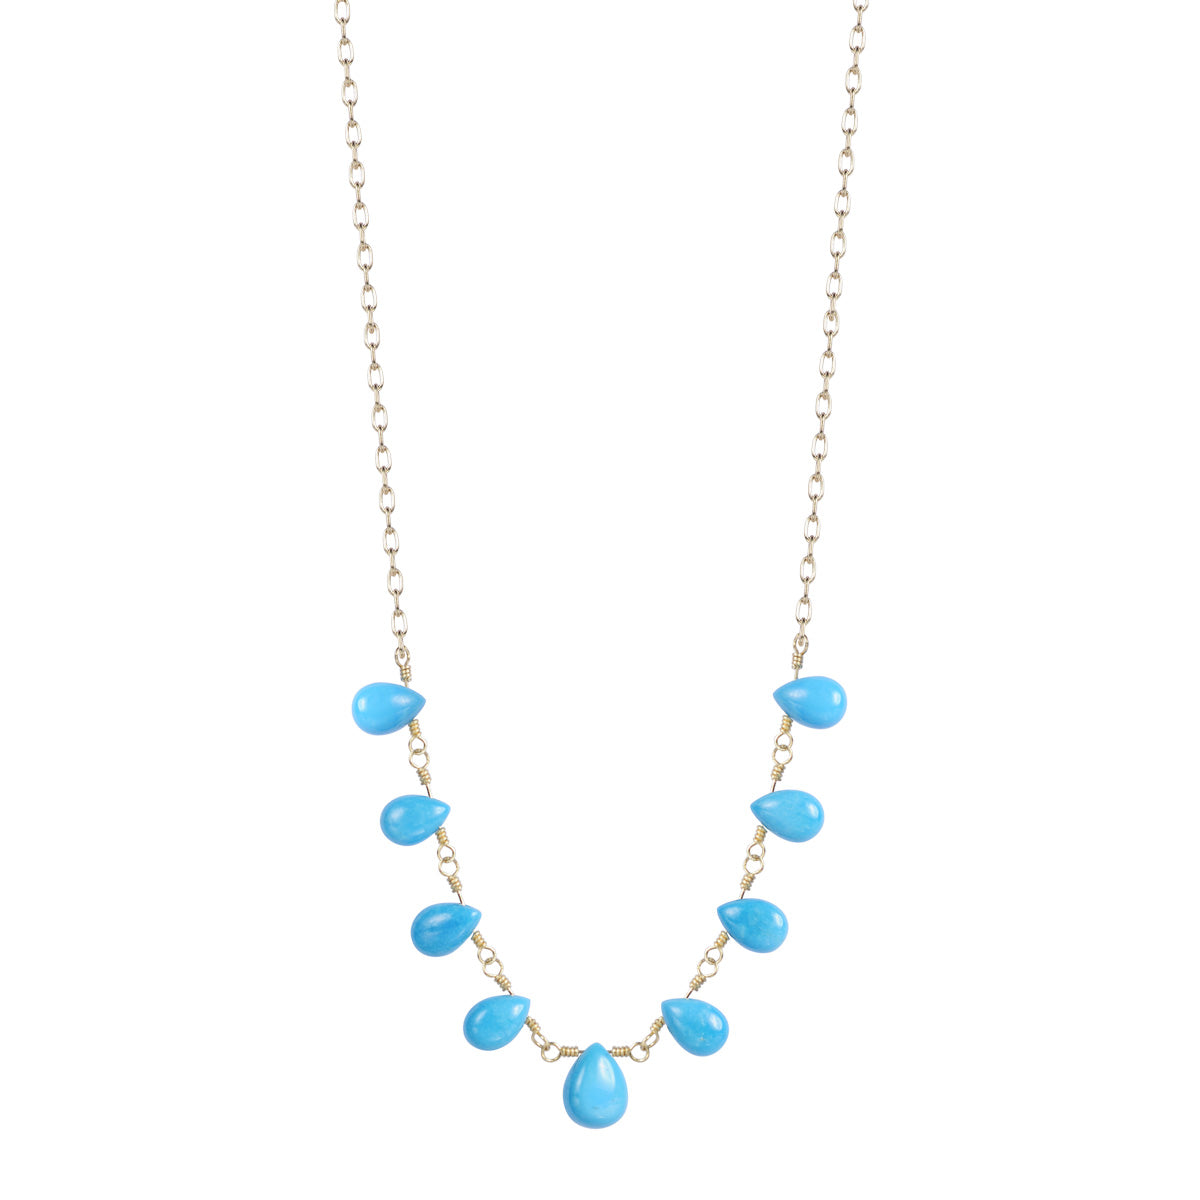 10K Gold 11 Turquoise Teardrops on Chain